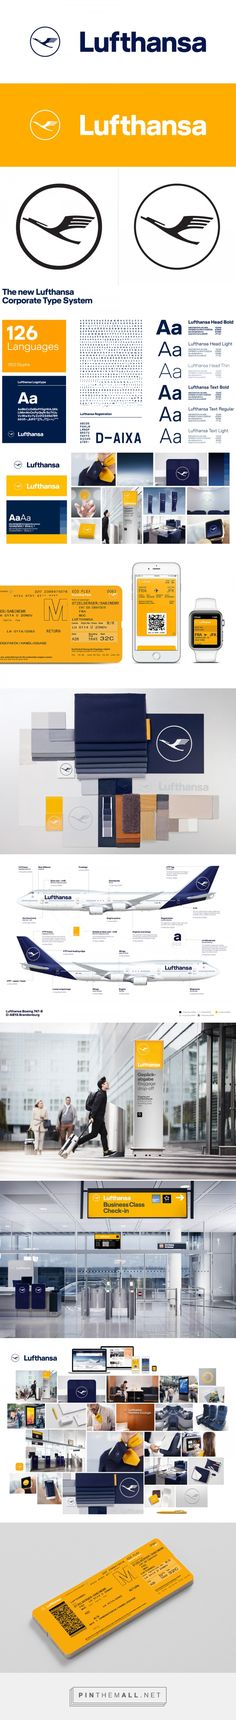 Brand New: New Logo, Identity, and Livery for Lufthansa done In-house in Collaboration with Martin et Karczinski - created via https://pinthemall.net